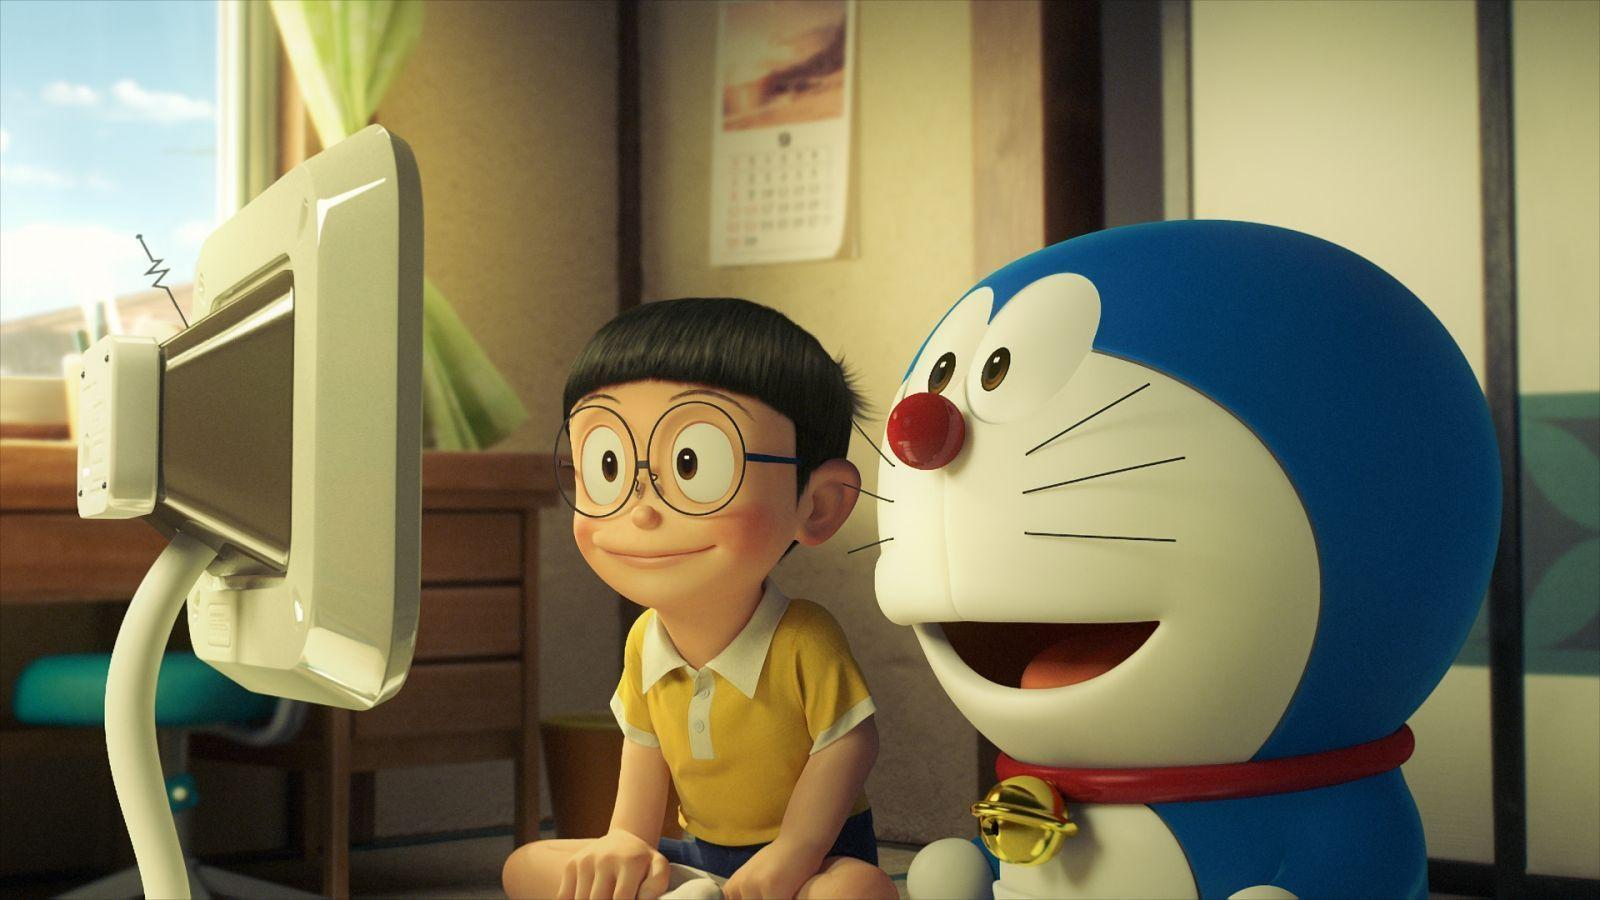 doraemon stand by me full movie free download in tamil